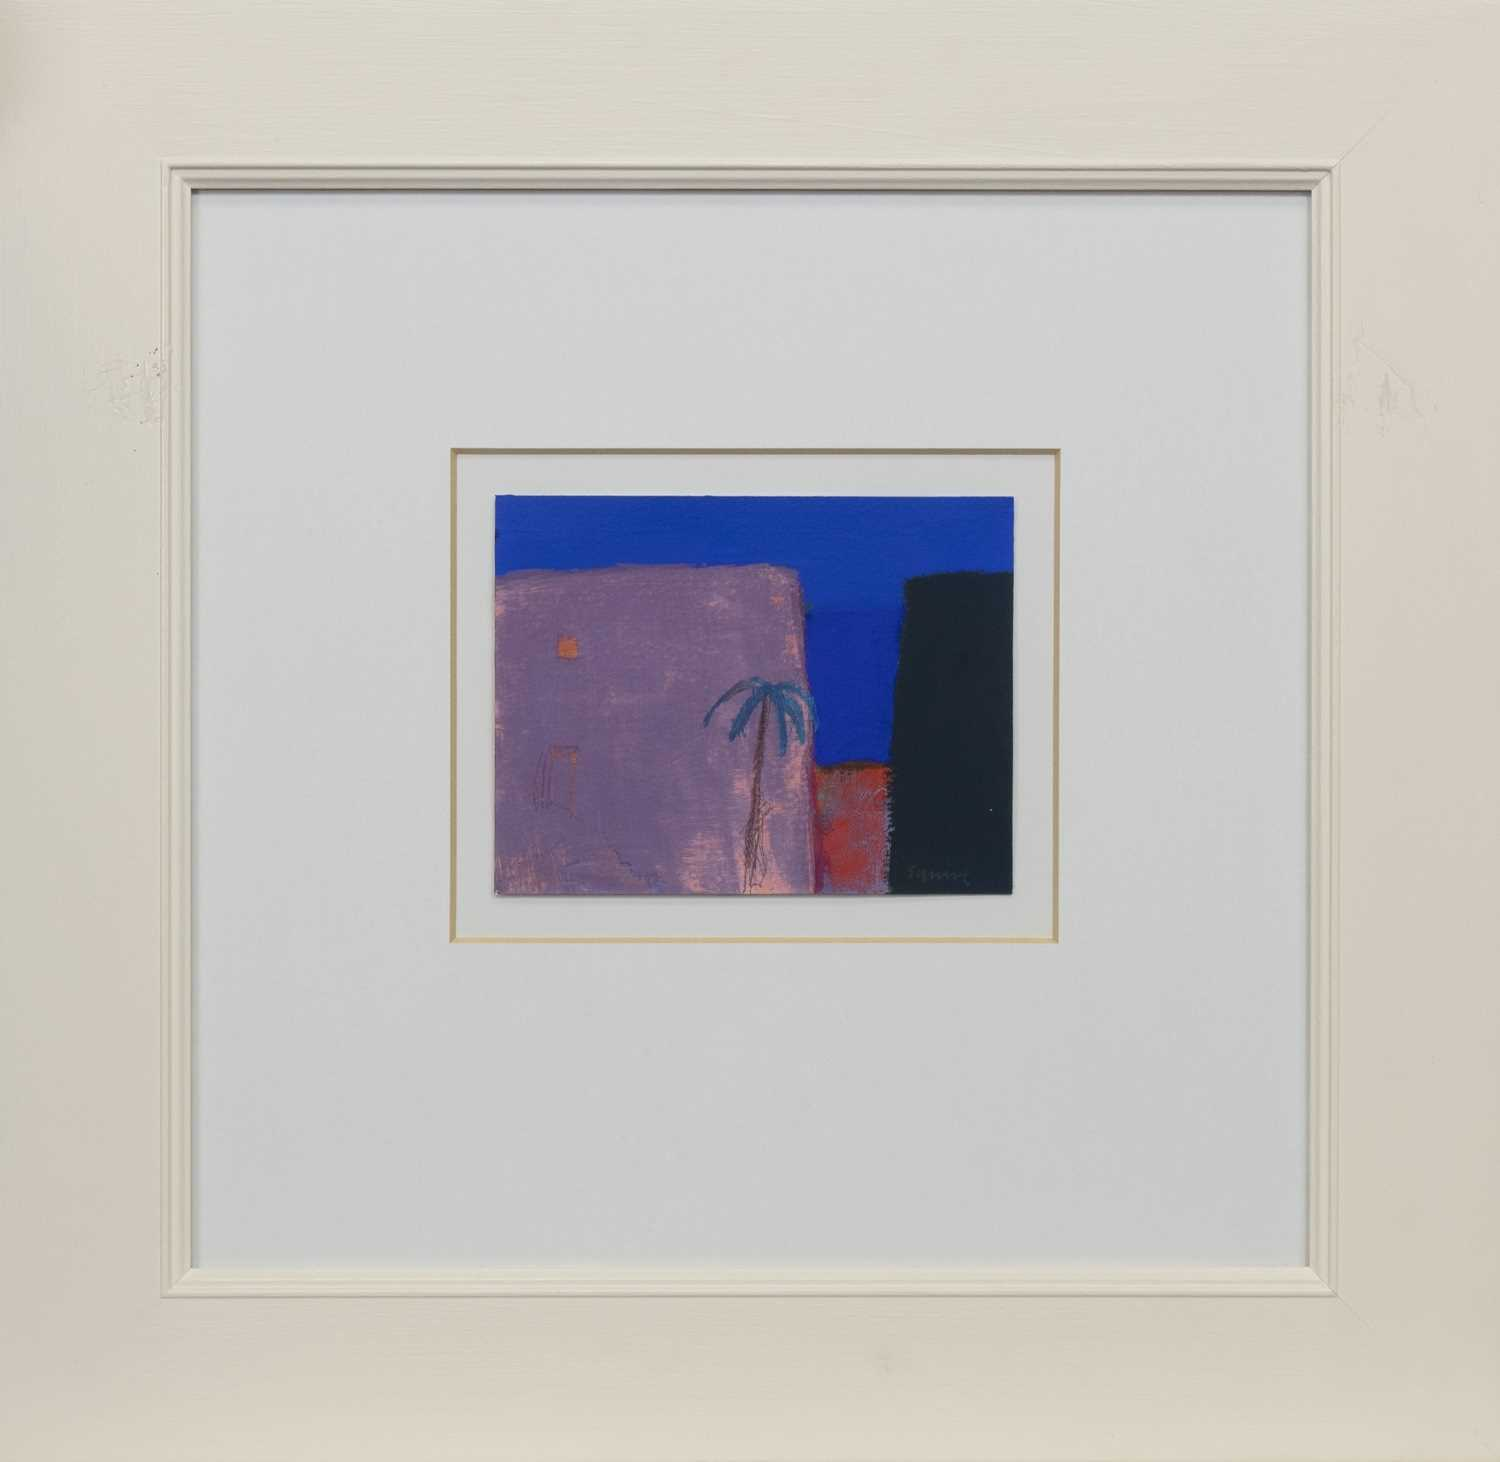 Lot 530 - PALM TREE, AN OIL BY ANDREW SQUIRE